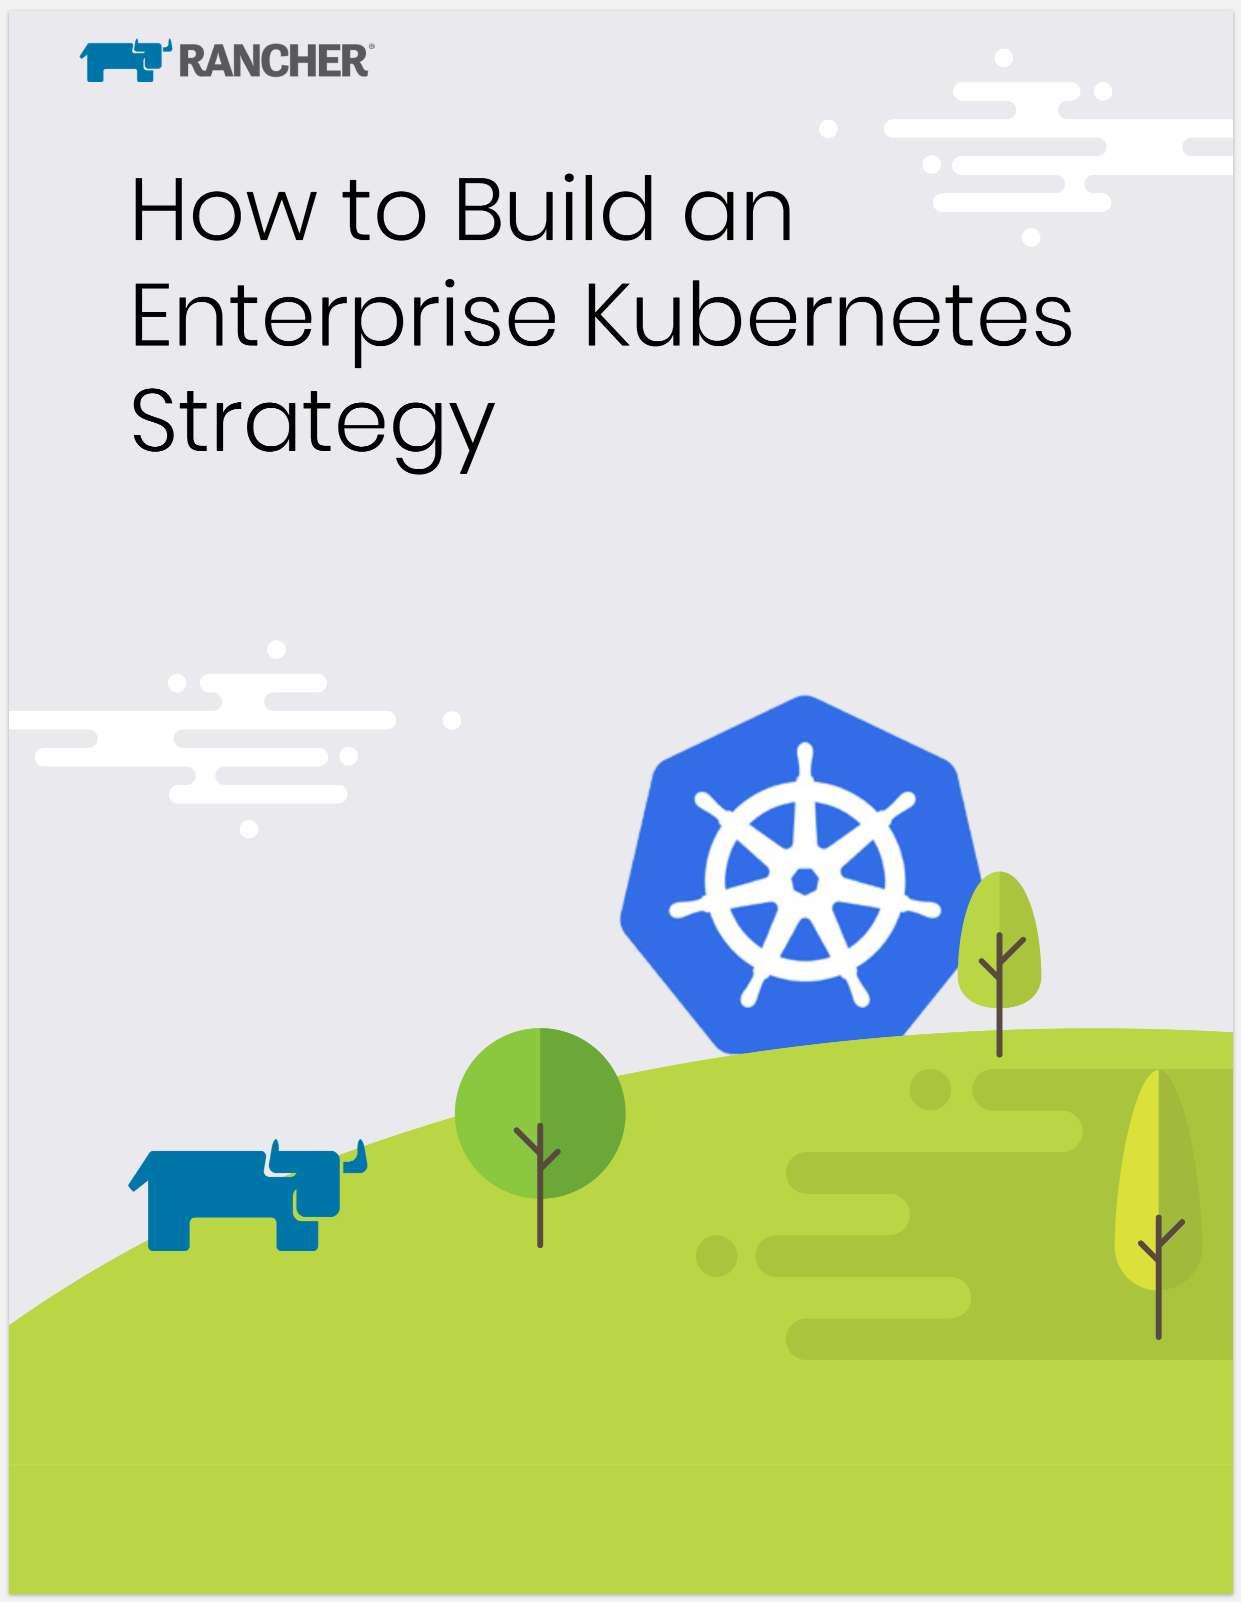 how-to-build-an-enterprise-kubernetes-strategy-whitepaper-thumbnail